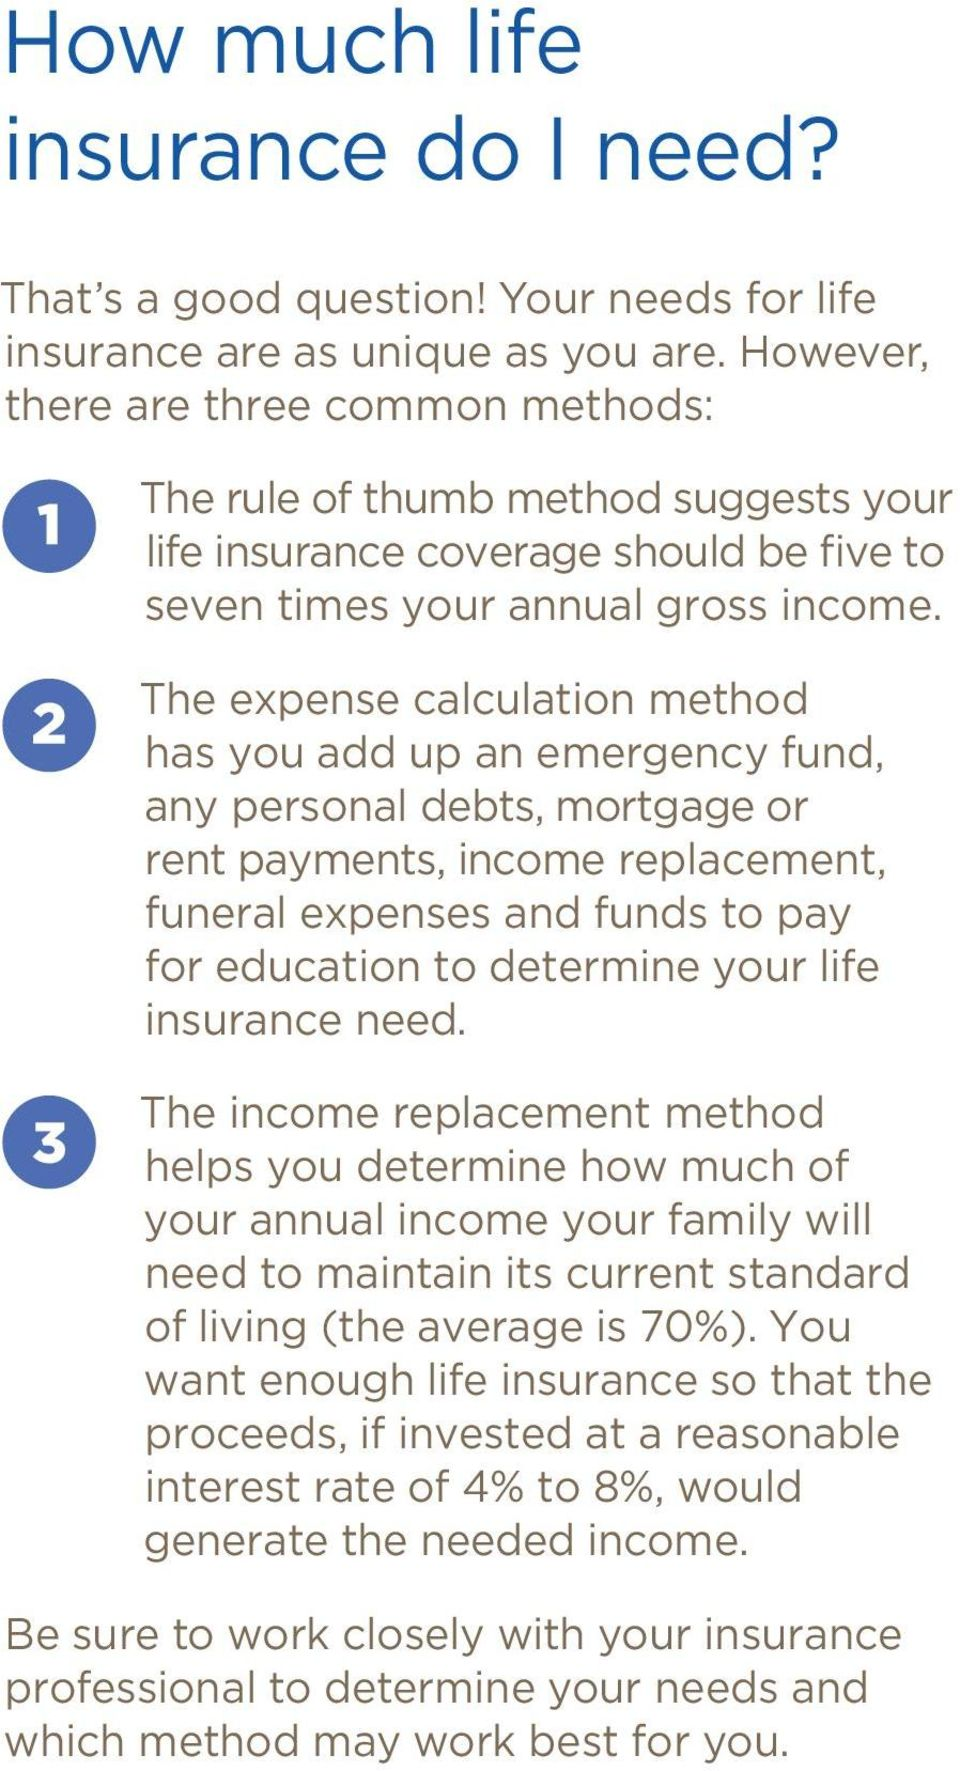 The expense calculation method has you add up an emergency fund, any personal debts, mortgage or rent payments, income replacement, funeral expenses and funds to pay for education to determine your